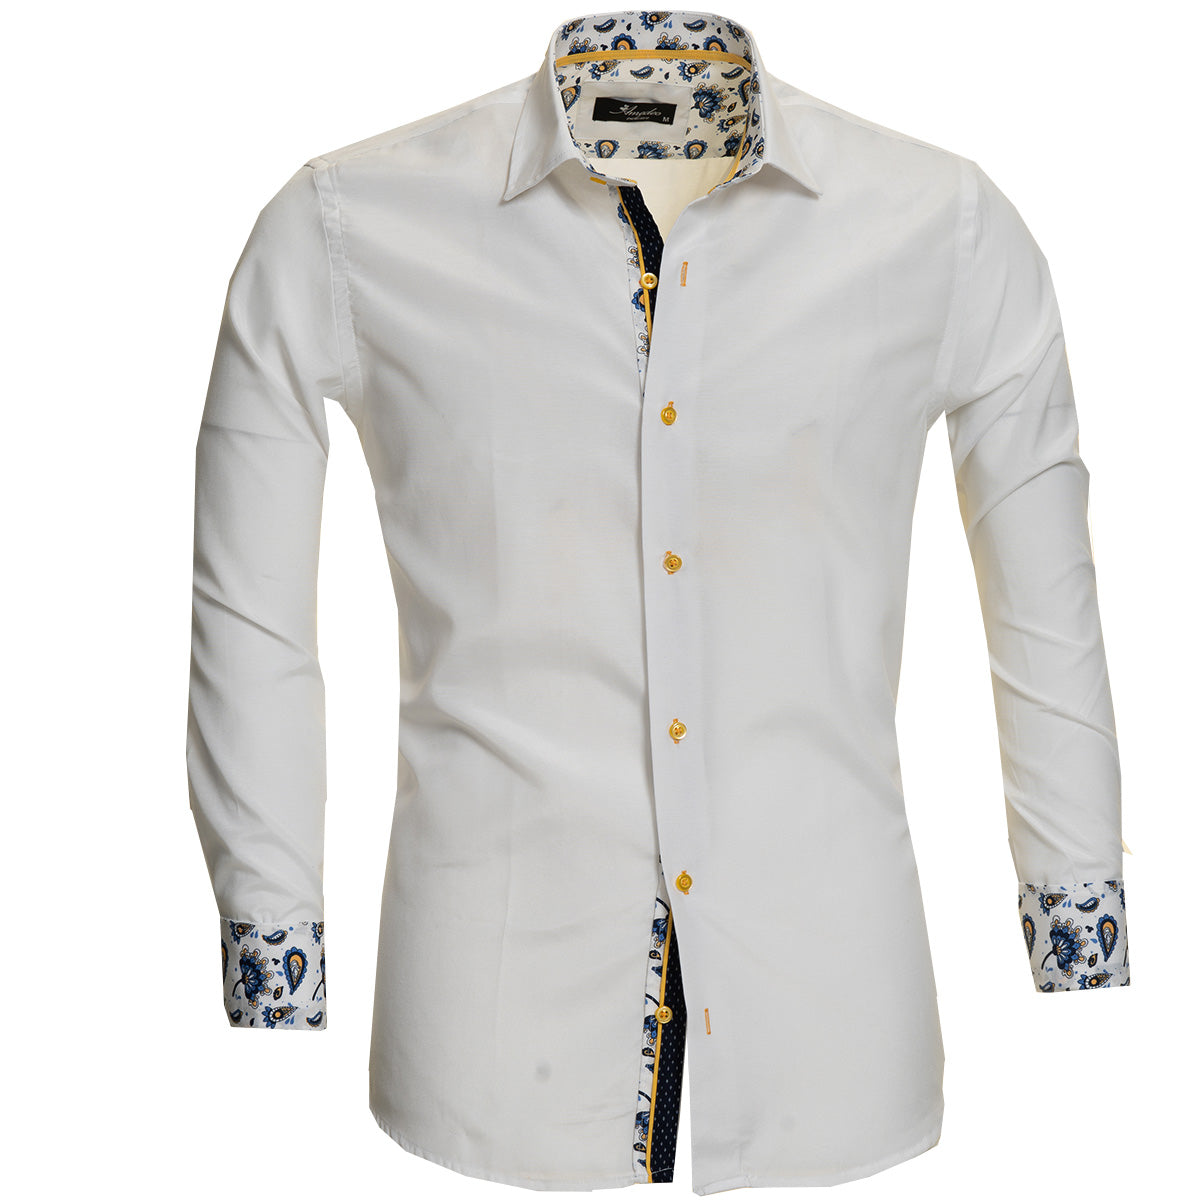 White Mens Slim Fit Designer Dress Shirt - Tailored Cotton Shirts For Work And Casual